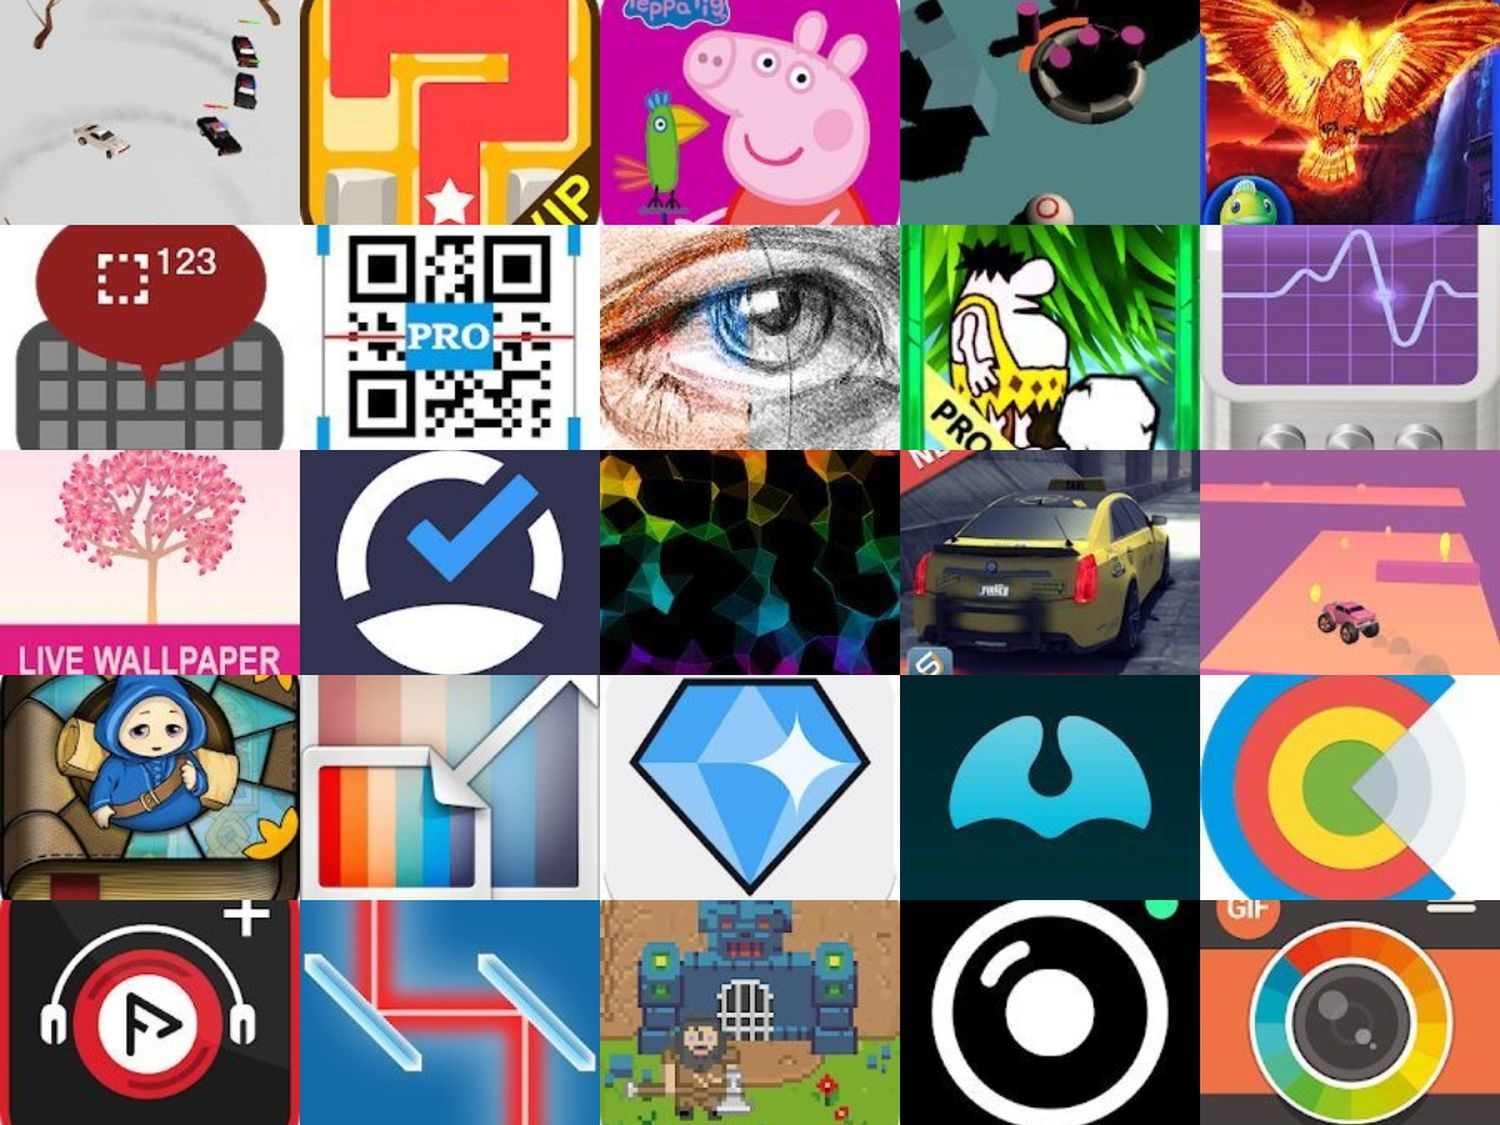 apps 10.05.2020